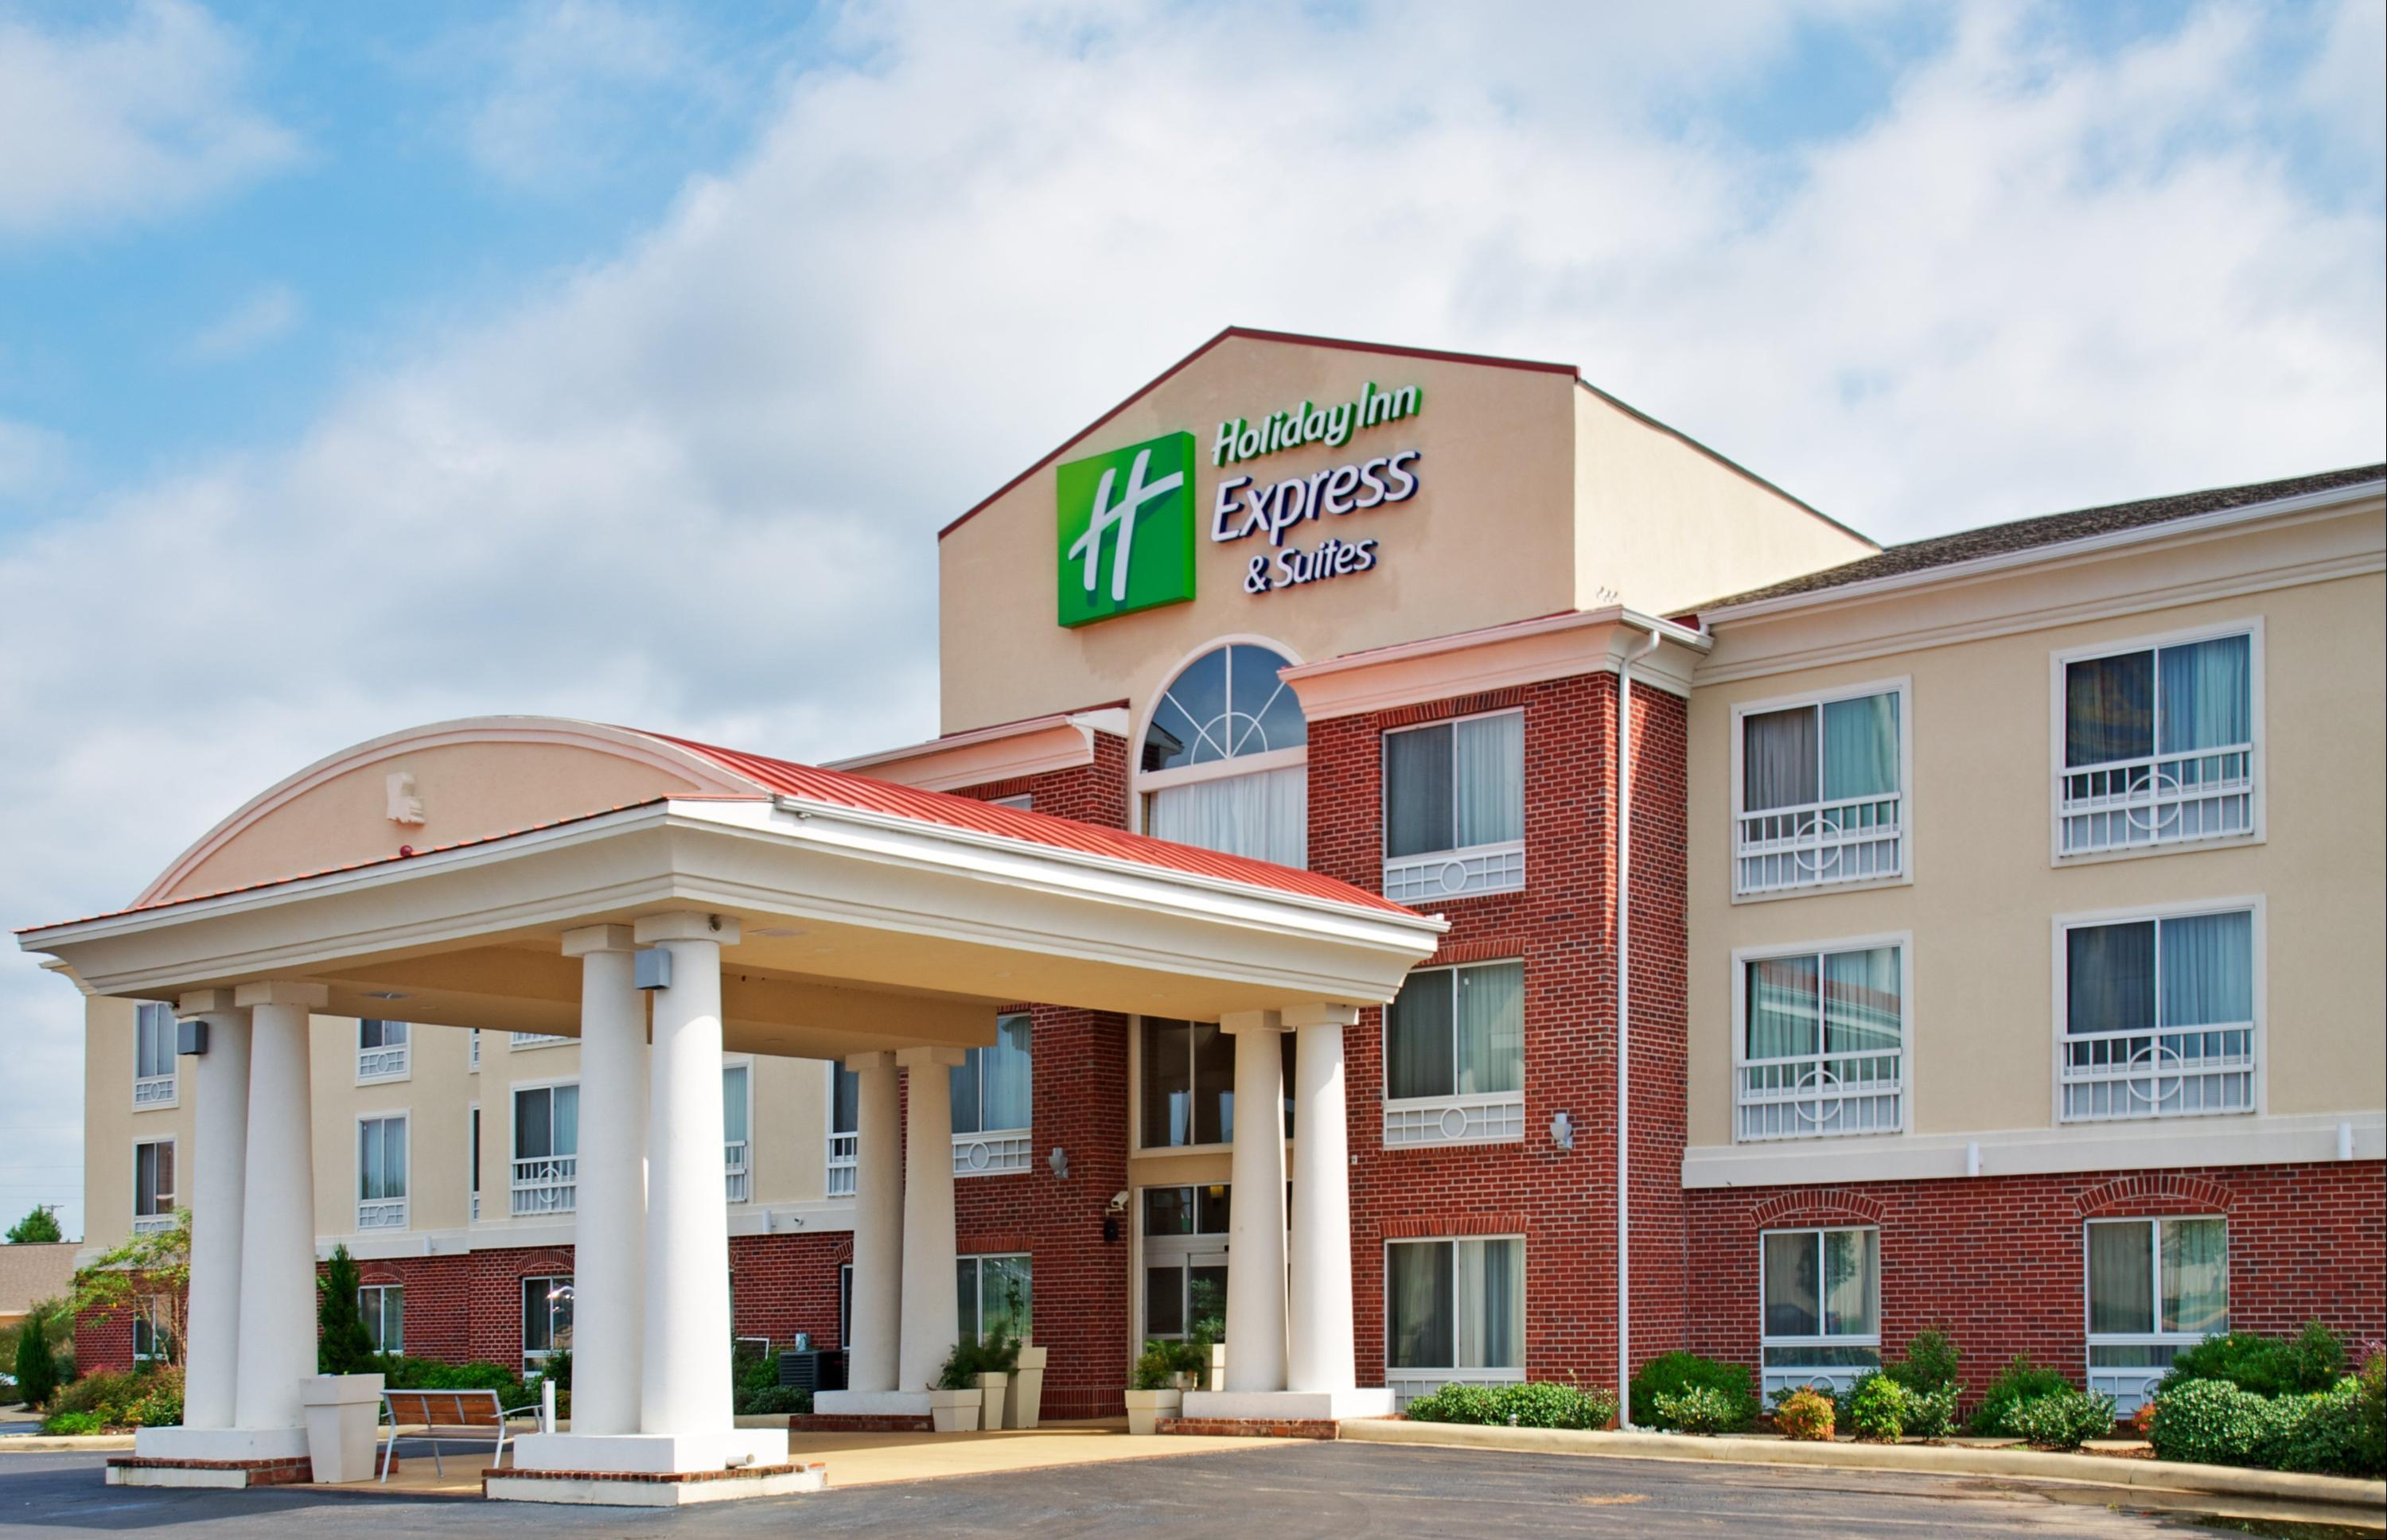 Holiday Inn Express Hotel & Suites Natchitoches